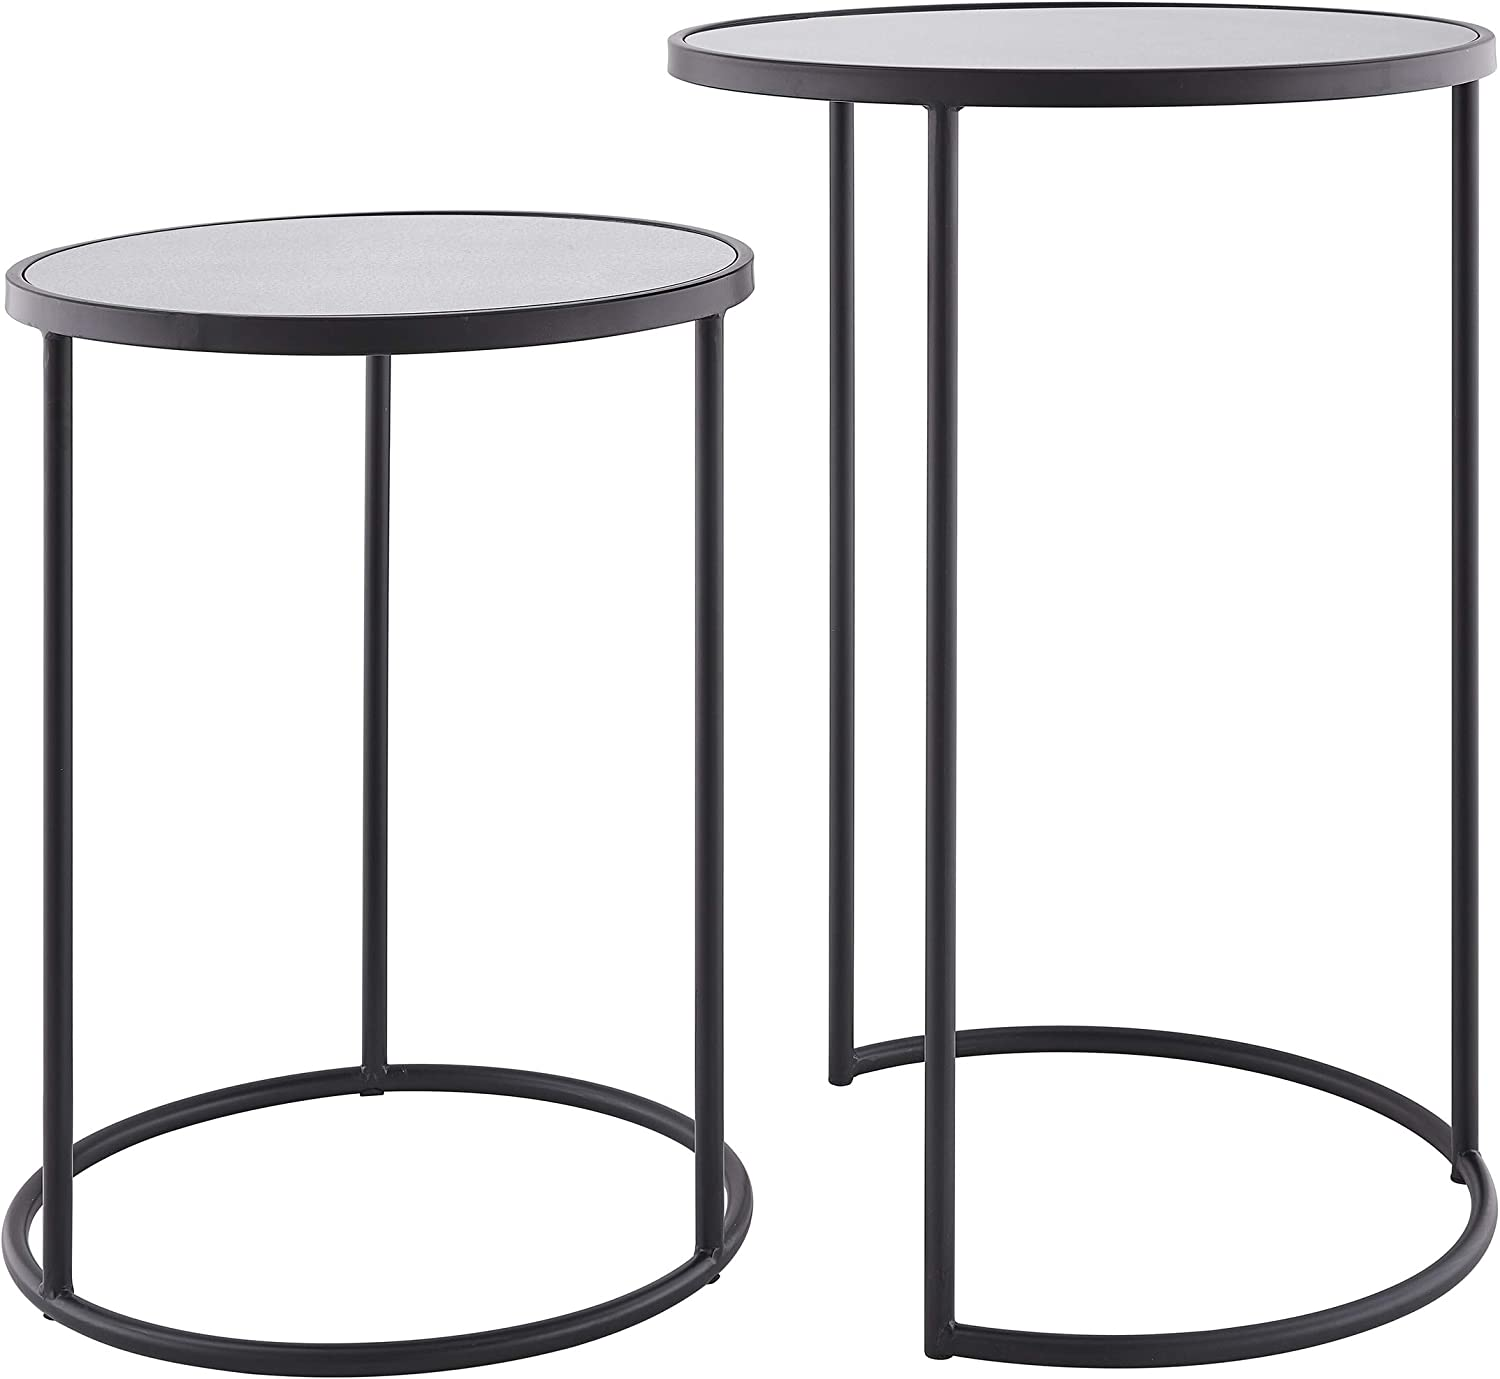 Holly /& Martin Alcovy Black Metal Nesting Accent Tables 2pc Set